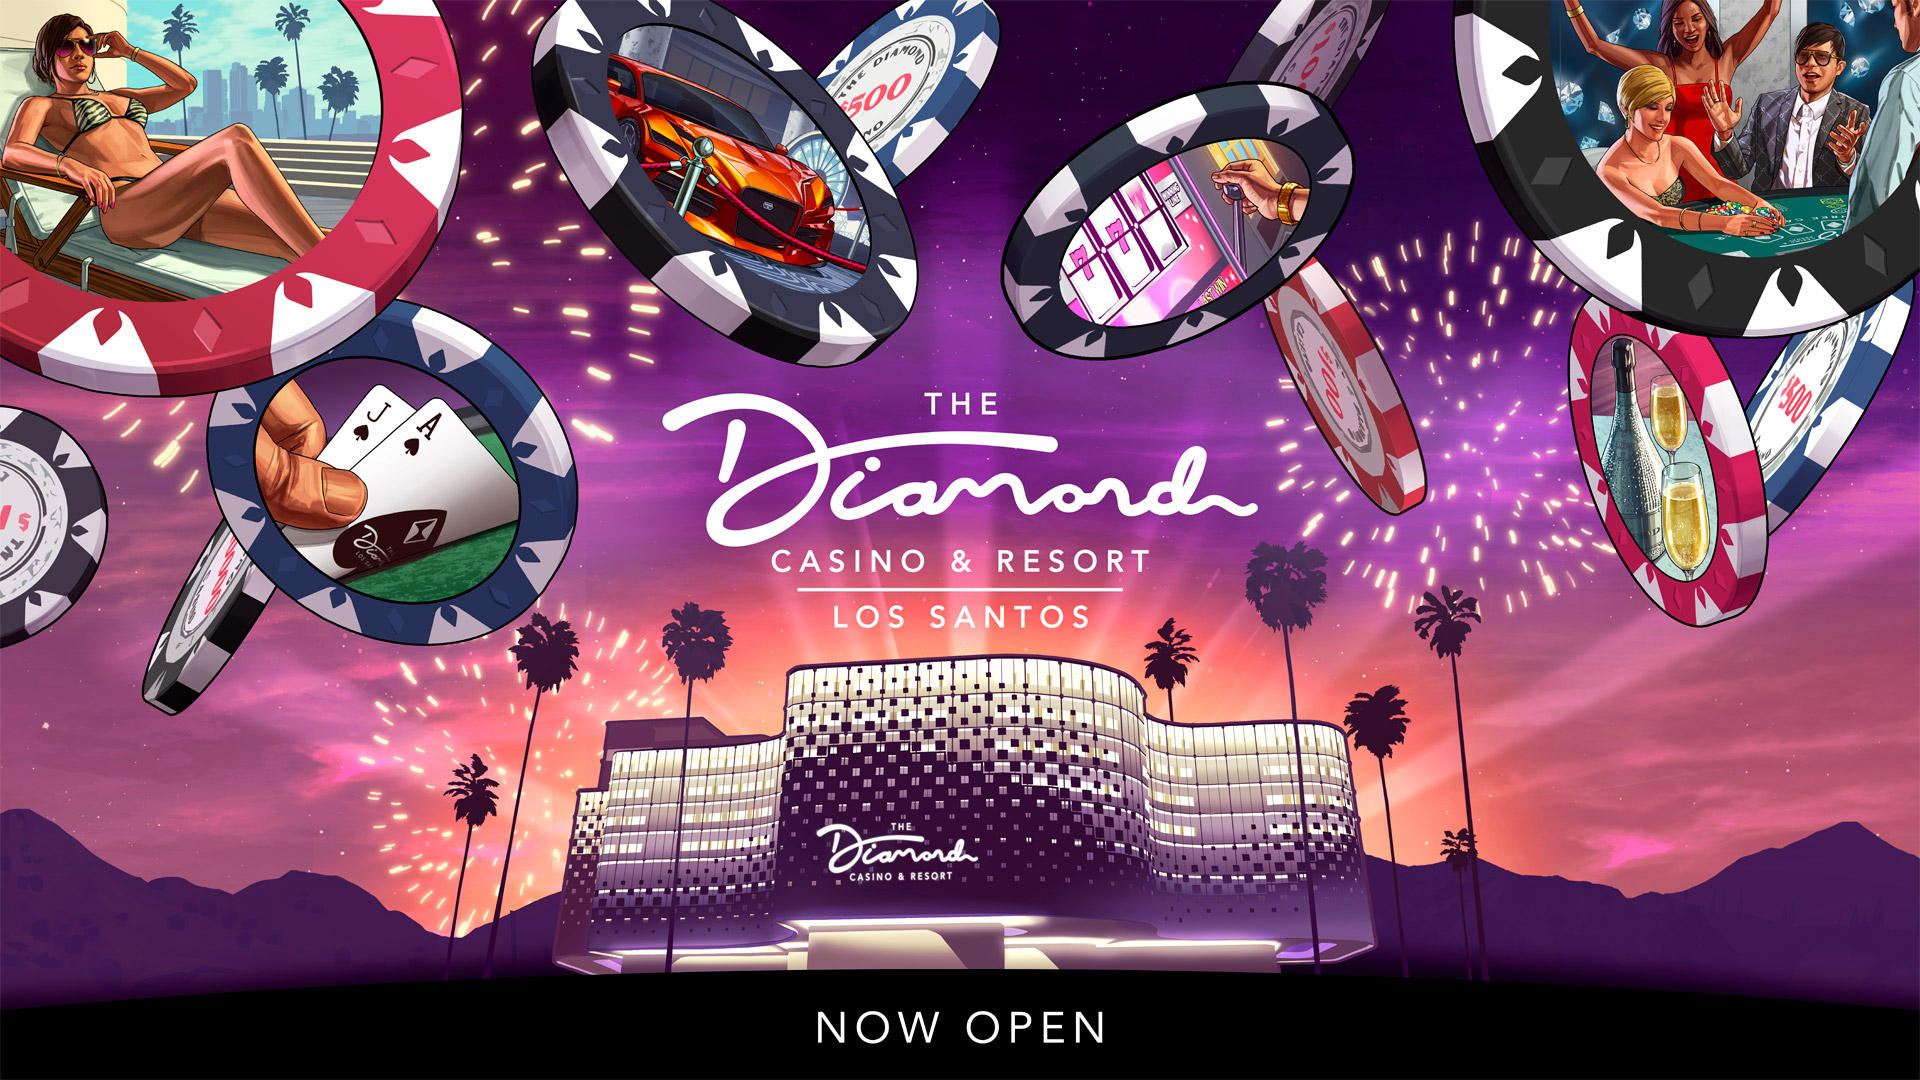 Grand Opening: The Diamond Casino & Resort is Now Open